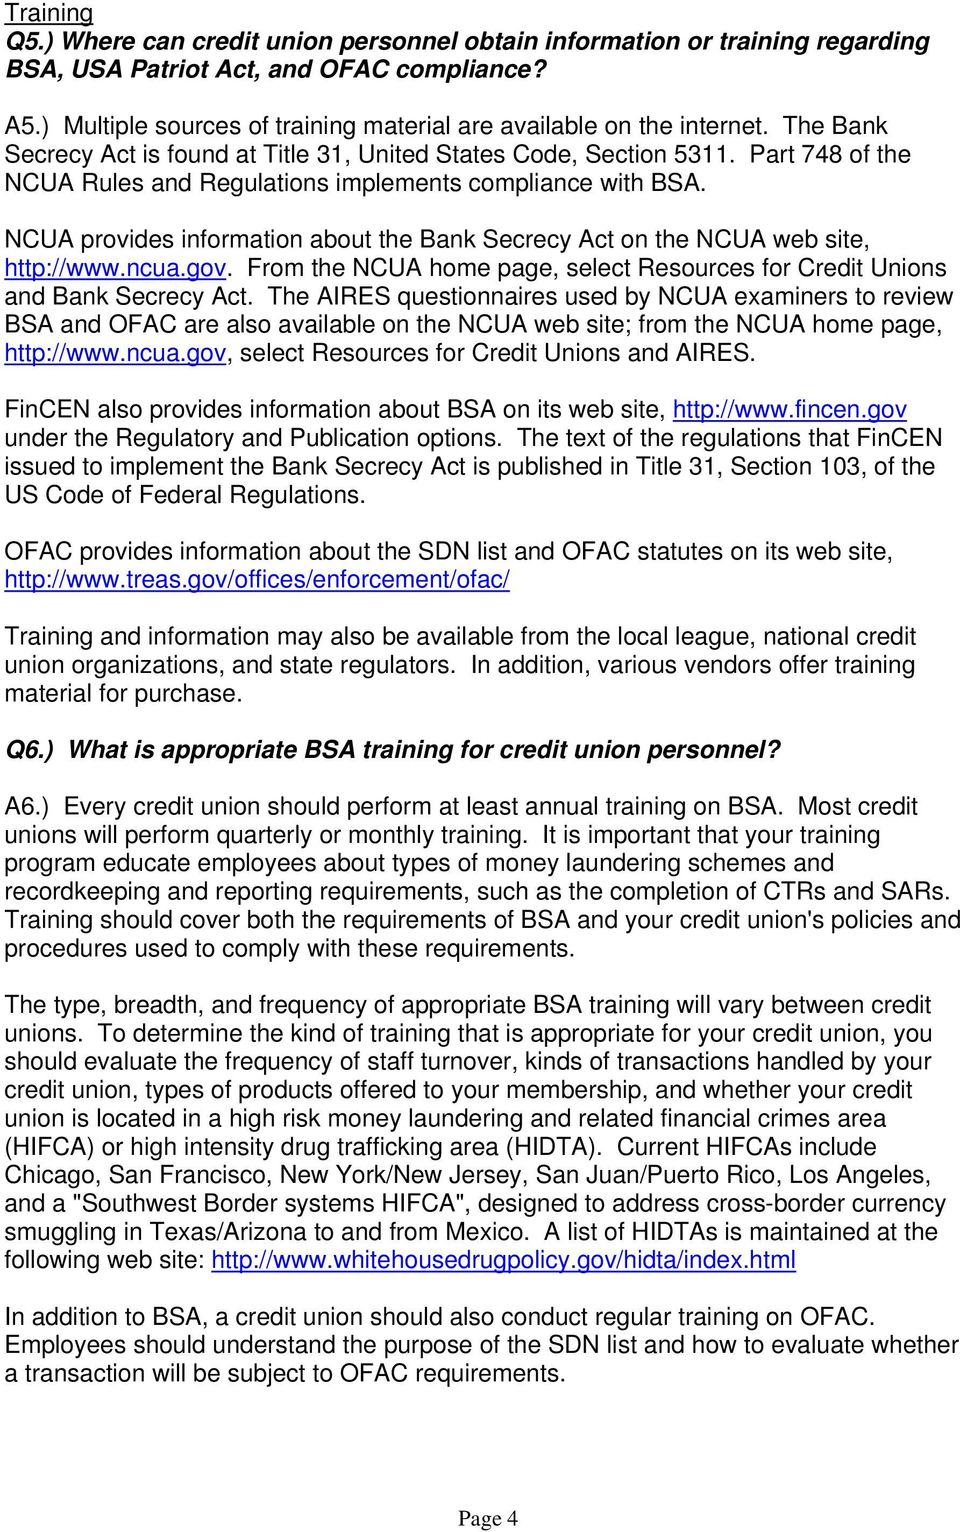 Part 748 of the NCUA Rules and Regulations implements compliance with BSA. NCUA provides information about the Bank Secrecy Act on the NCUA web site, http://www.ncua.gov.